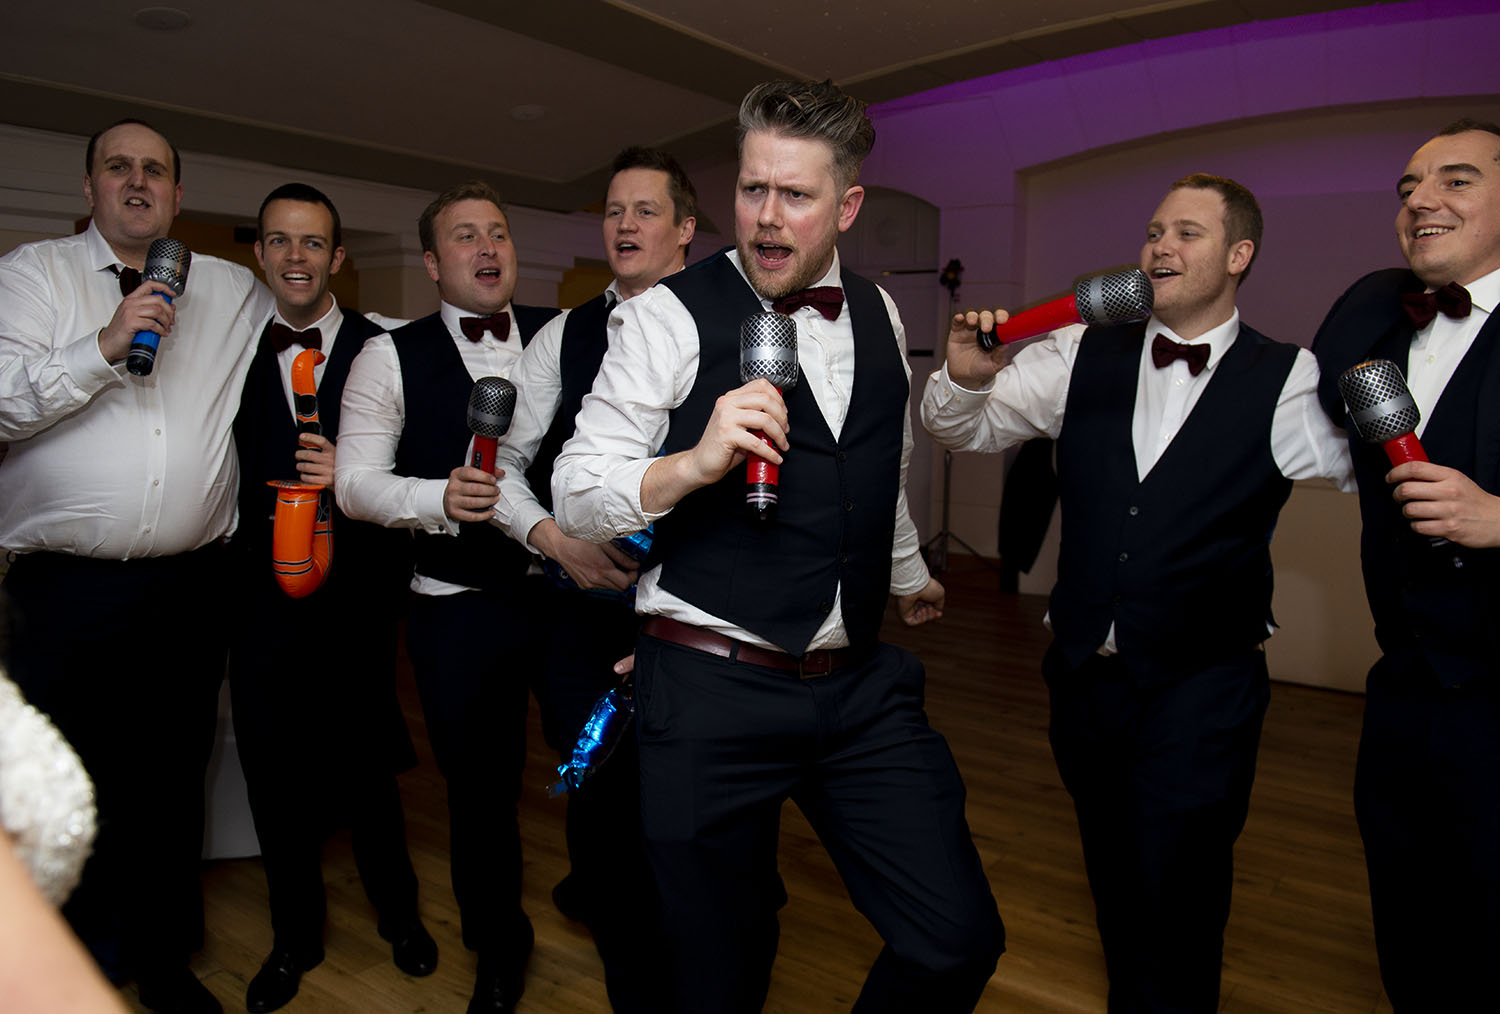 Leicester WEdding photographer, groom sings into blow up microphone, groomsmen